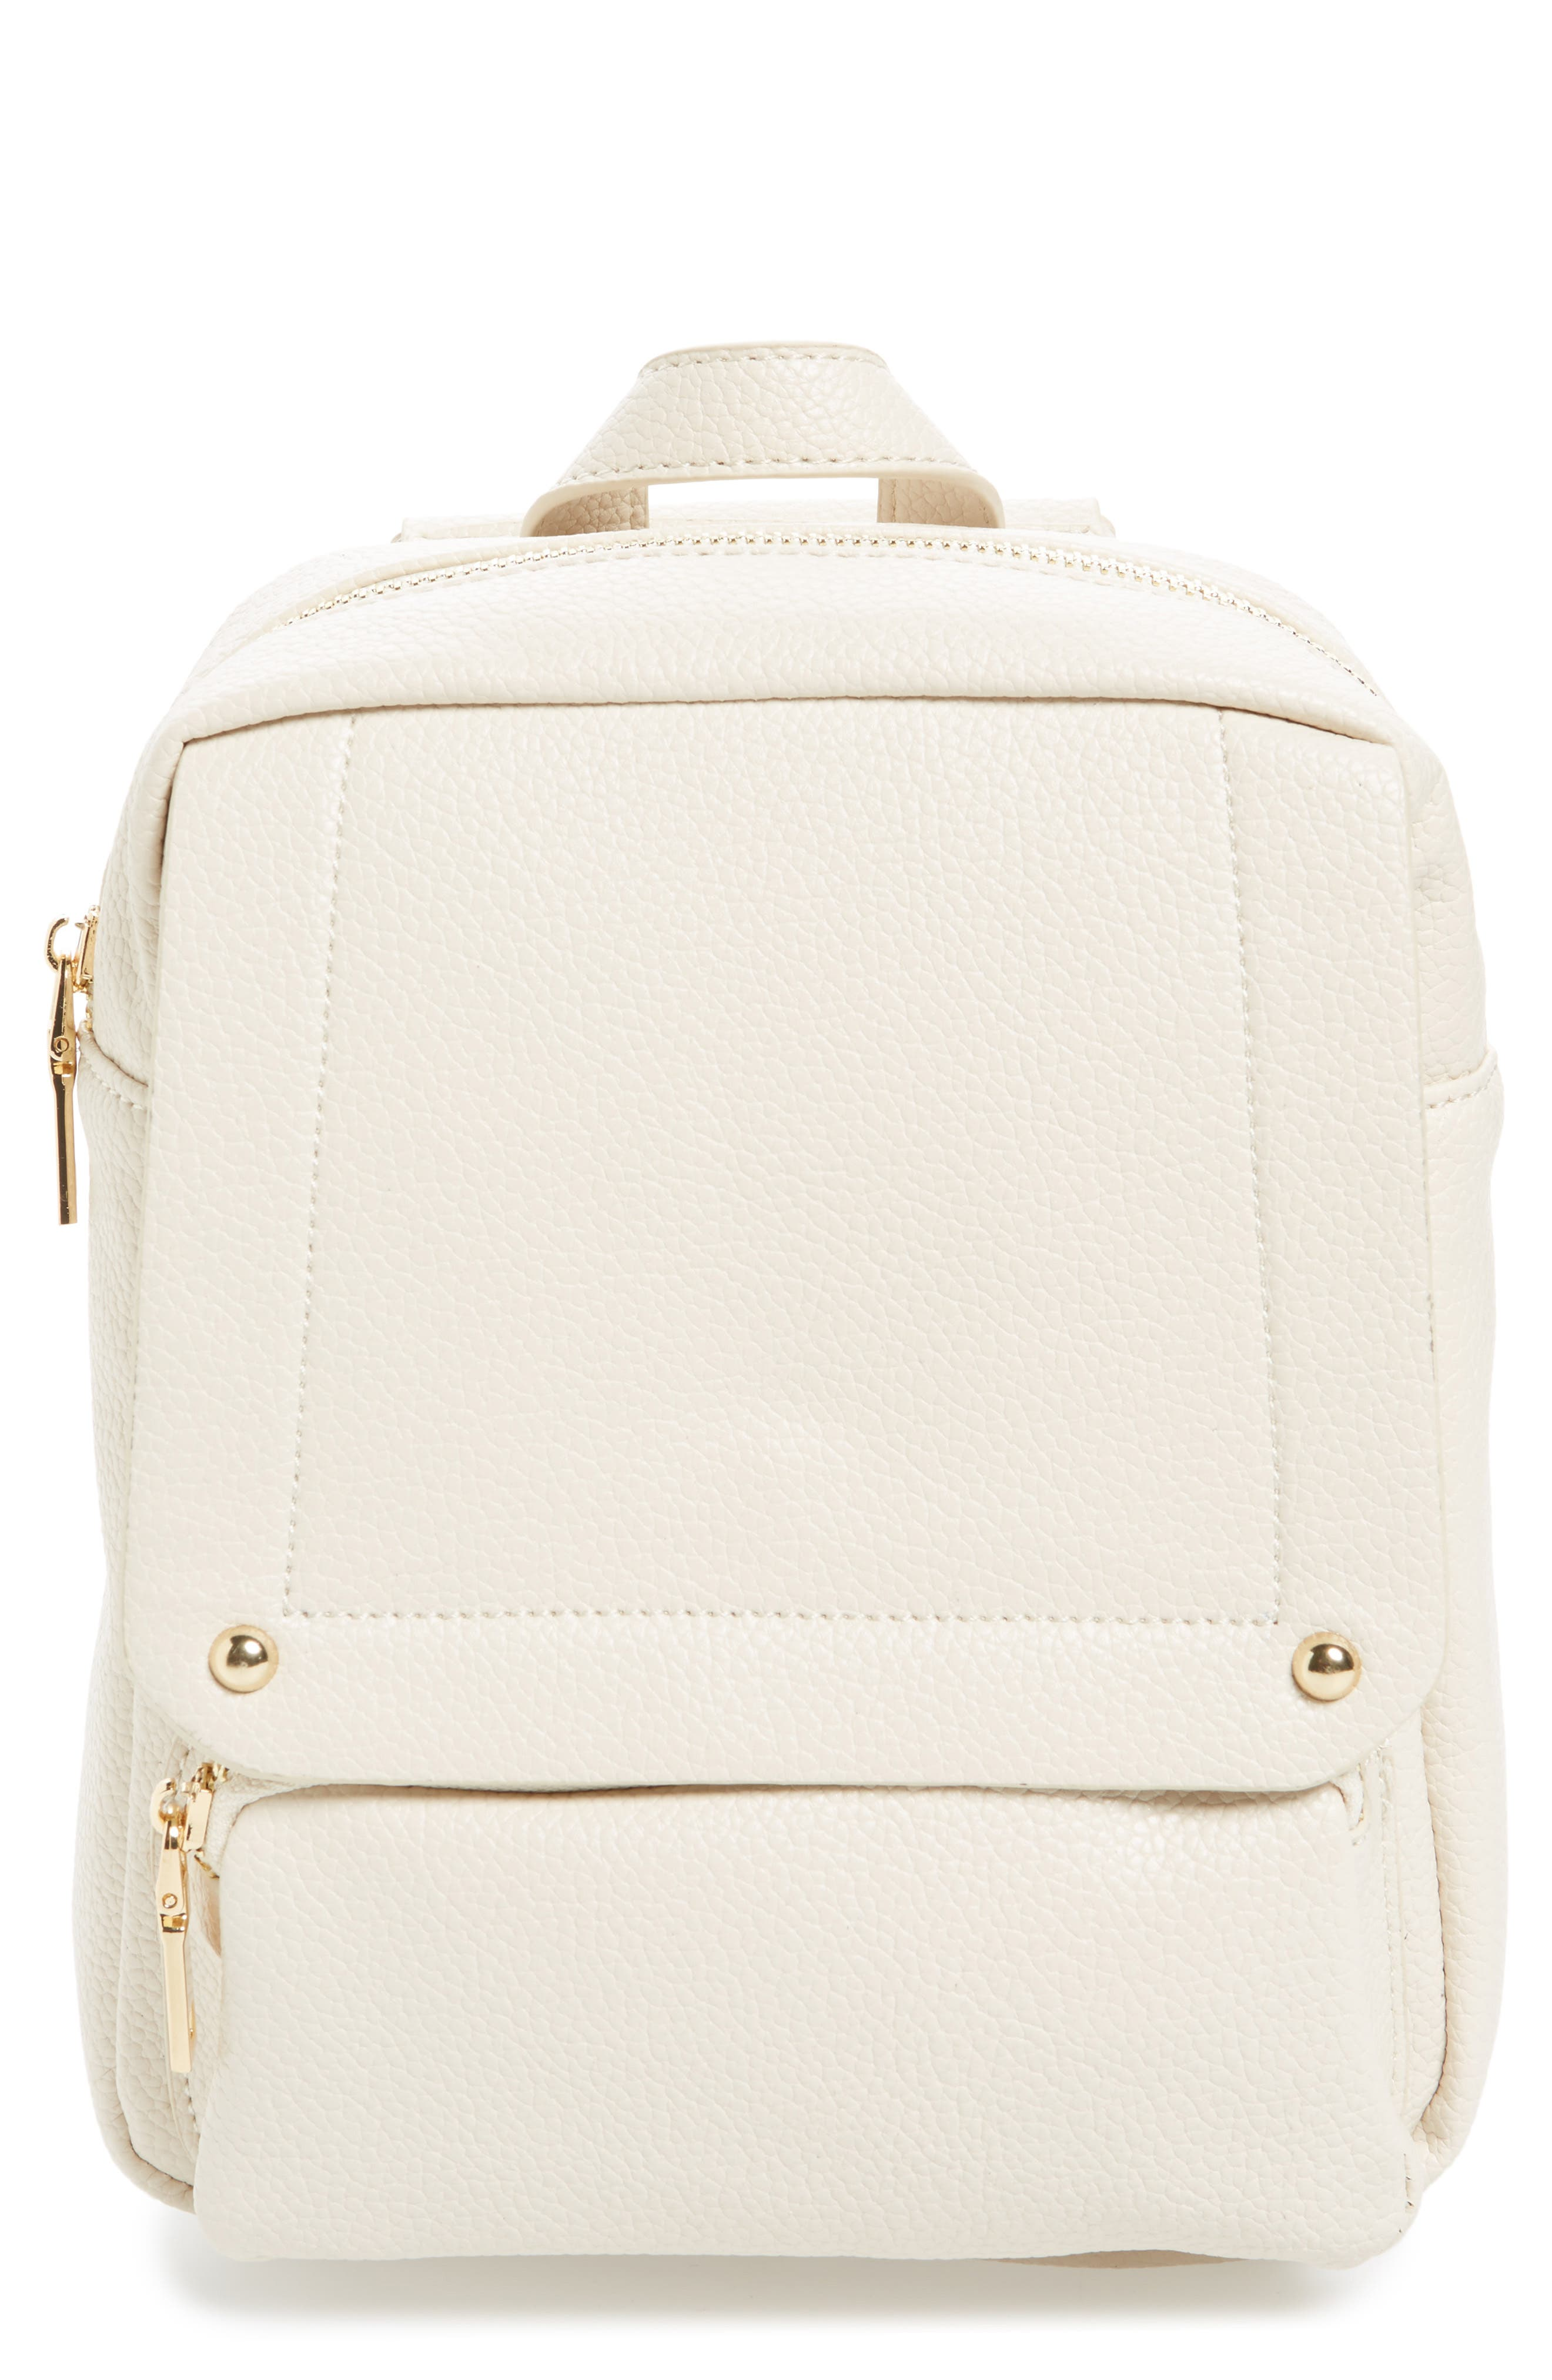 Main Image - Girly Faux Leather Flap Mini Backpack